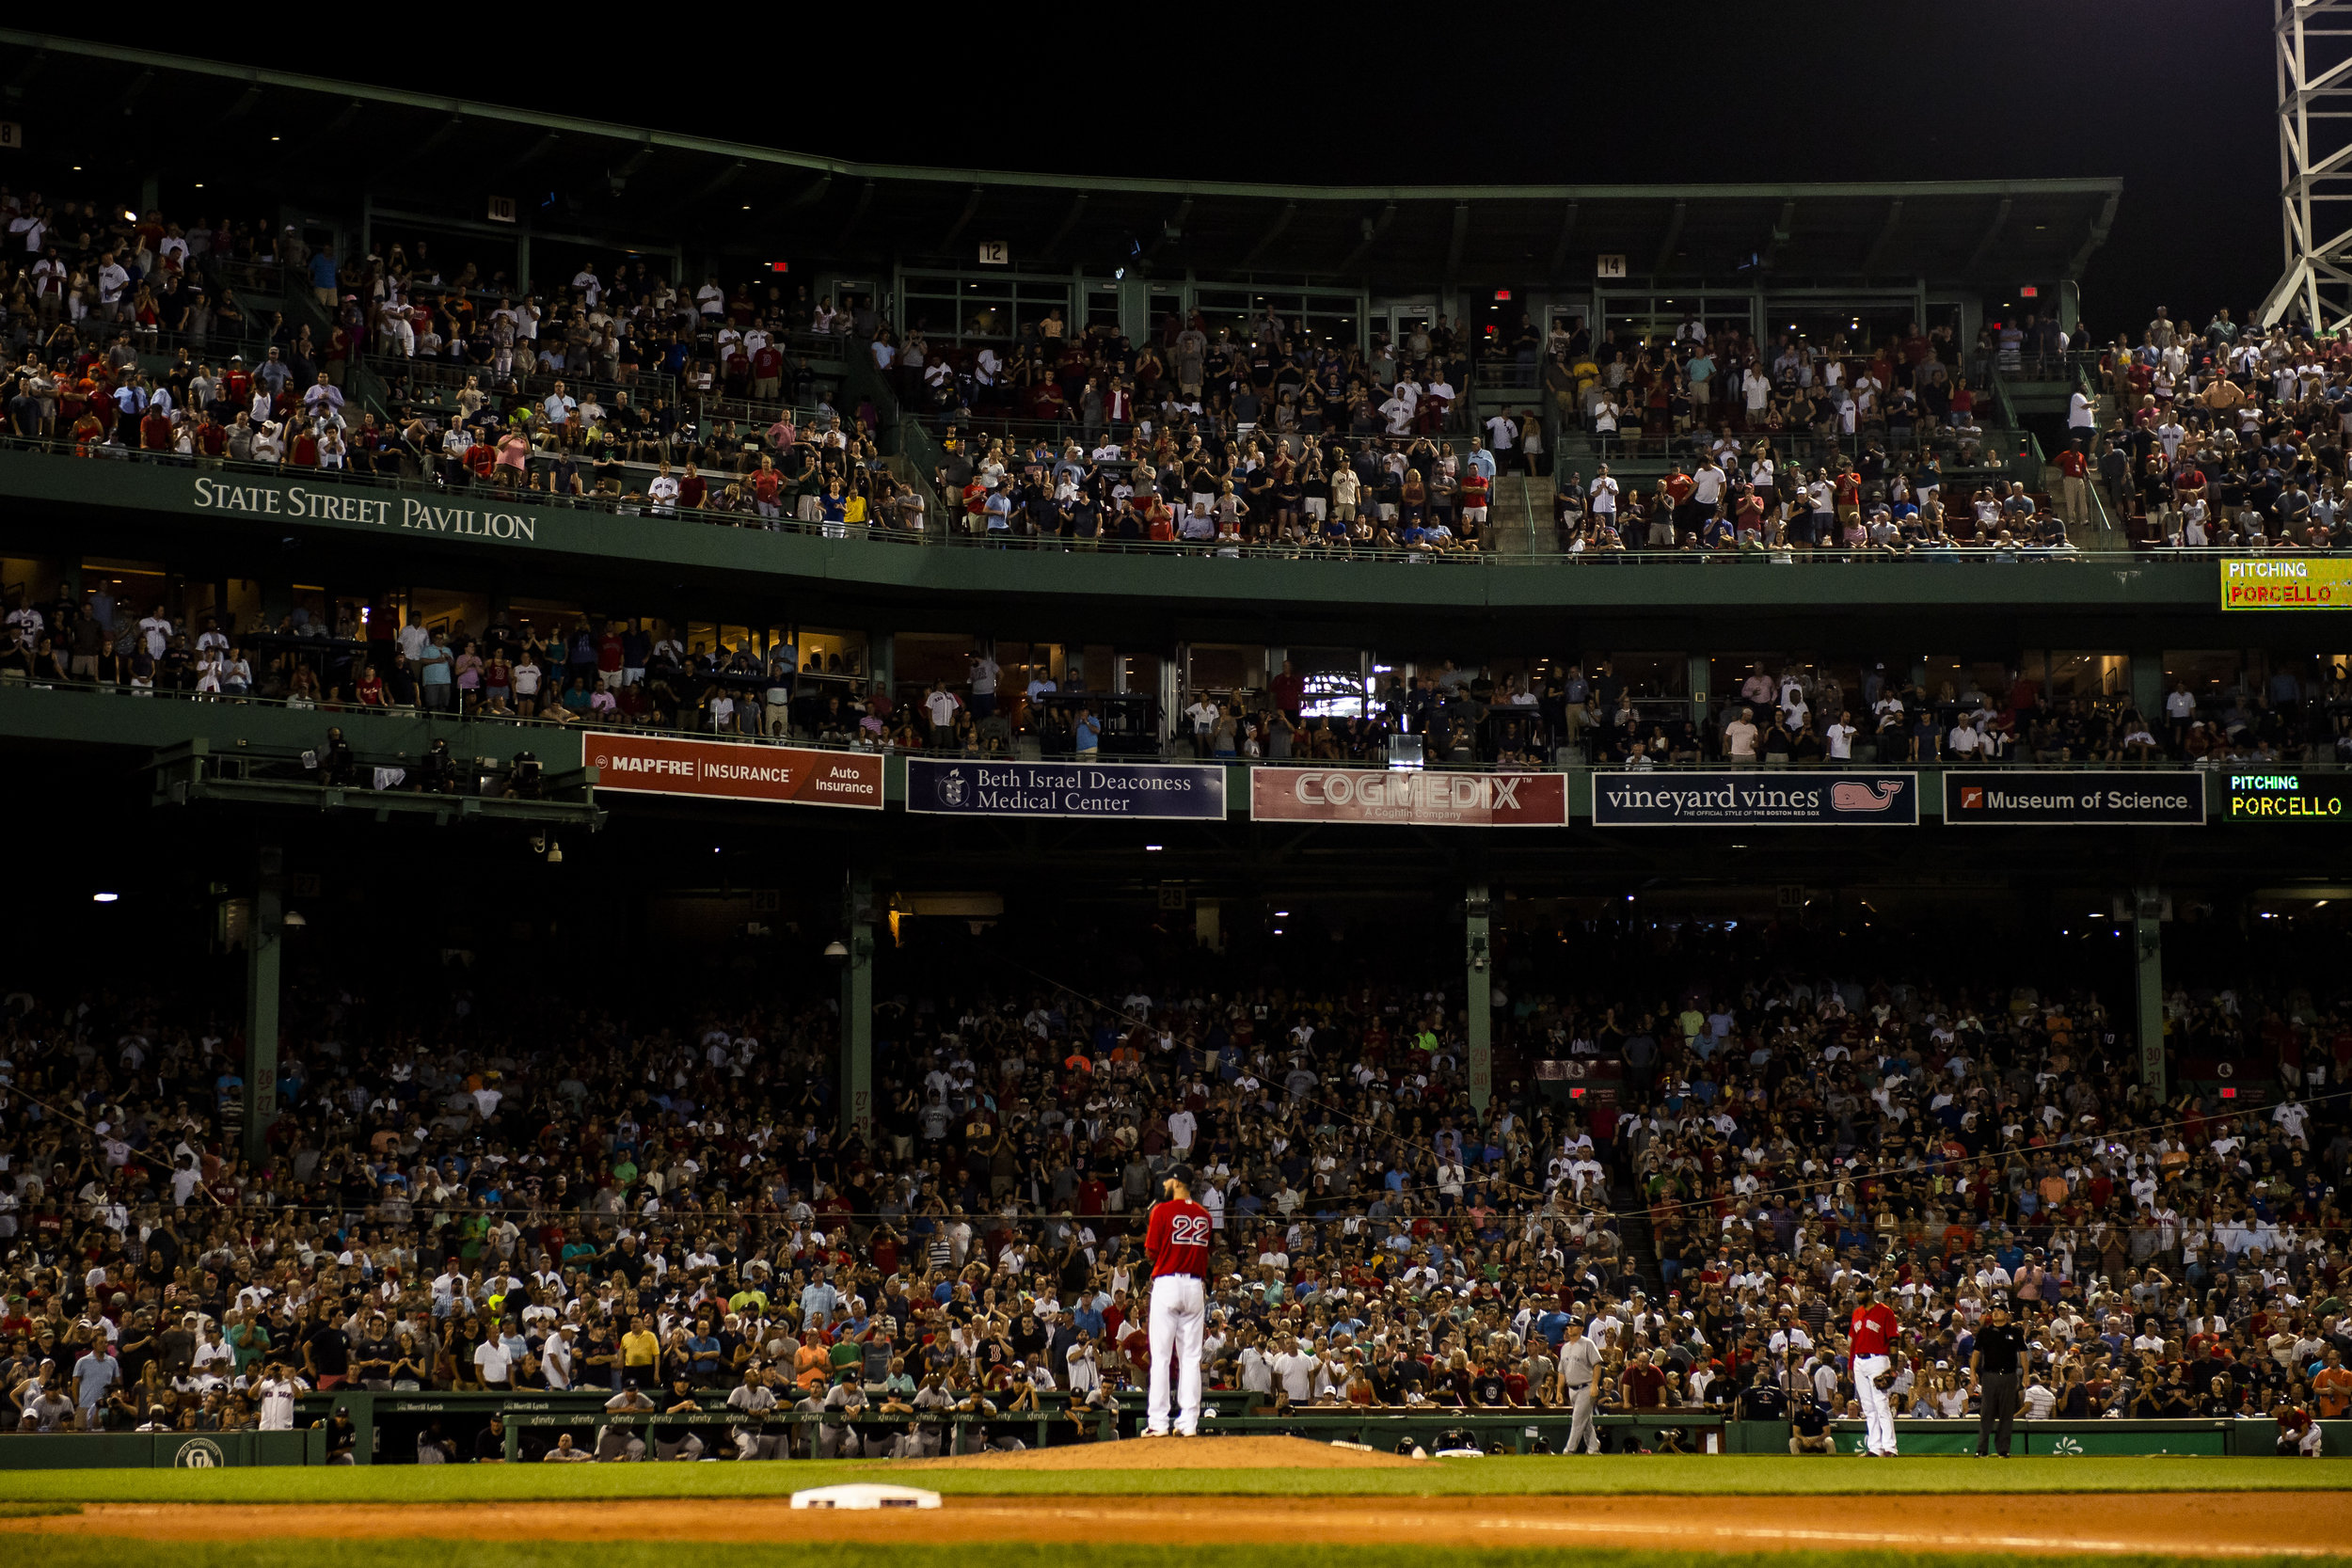 August 3, 2018, Boston, MA: Boston Red Sox pitcher Rick Porcello stands on the mound in the top of the ninth inning pitching a complete game as the Boston Red Sox face the New York Yankees at Fenway Park in Boston, Massachusetts on Friday, August 3, 2018. (Photo by Matthew Thomas/Boston Red Sox)